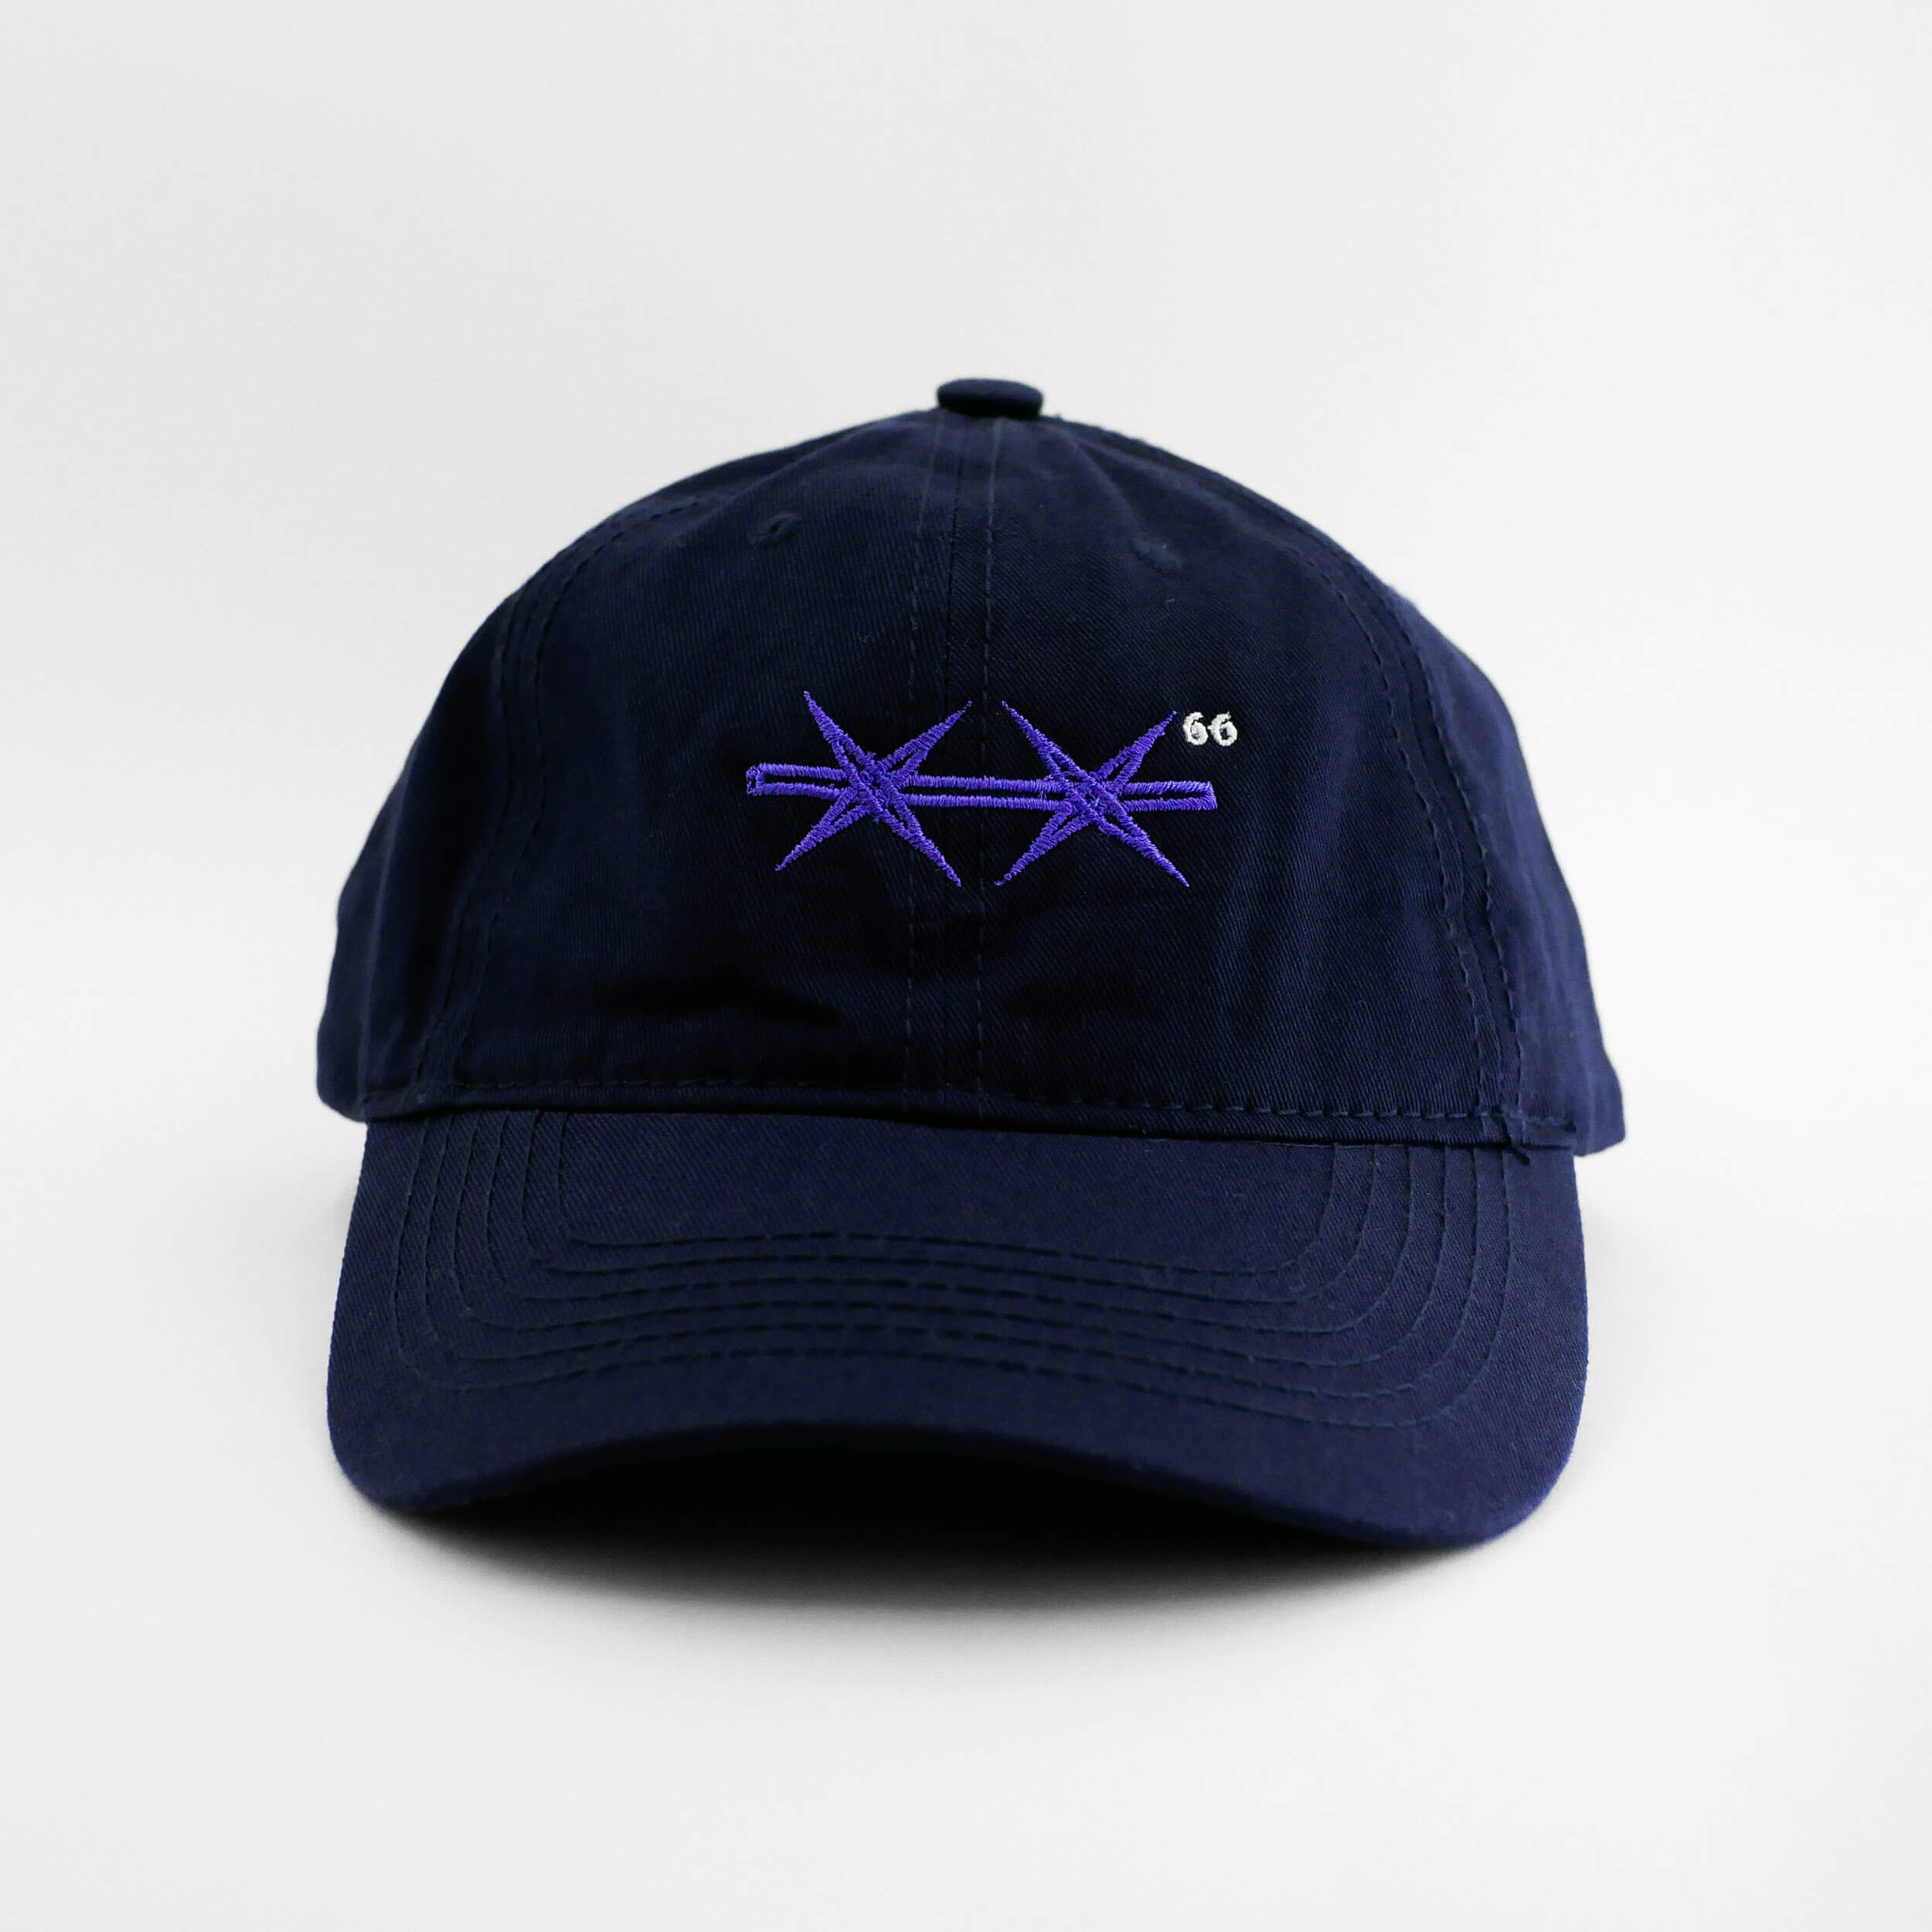 Front view of the embroidered Barbed Wire navy blue hat from PHOSIS Clothing